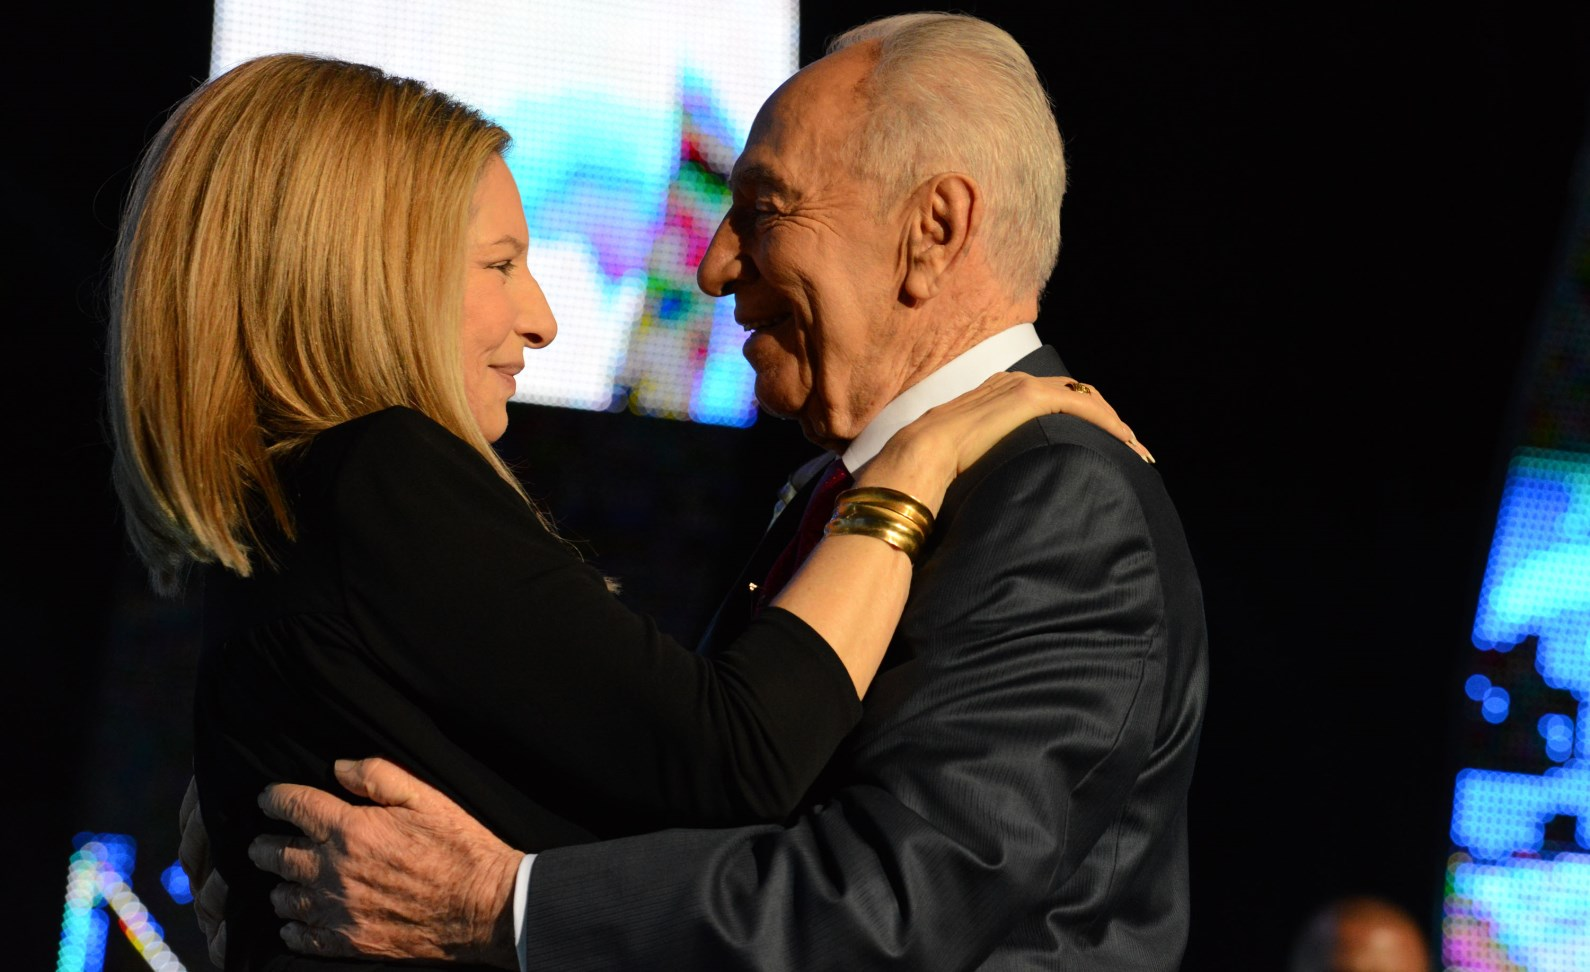 Barbra Streisand congratulating then Israeli President Shimon Peres during his 90th birthday celebration in 2013. Photo by Kobi Gideon/GPO/FLASH90